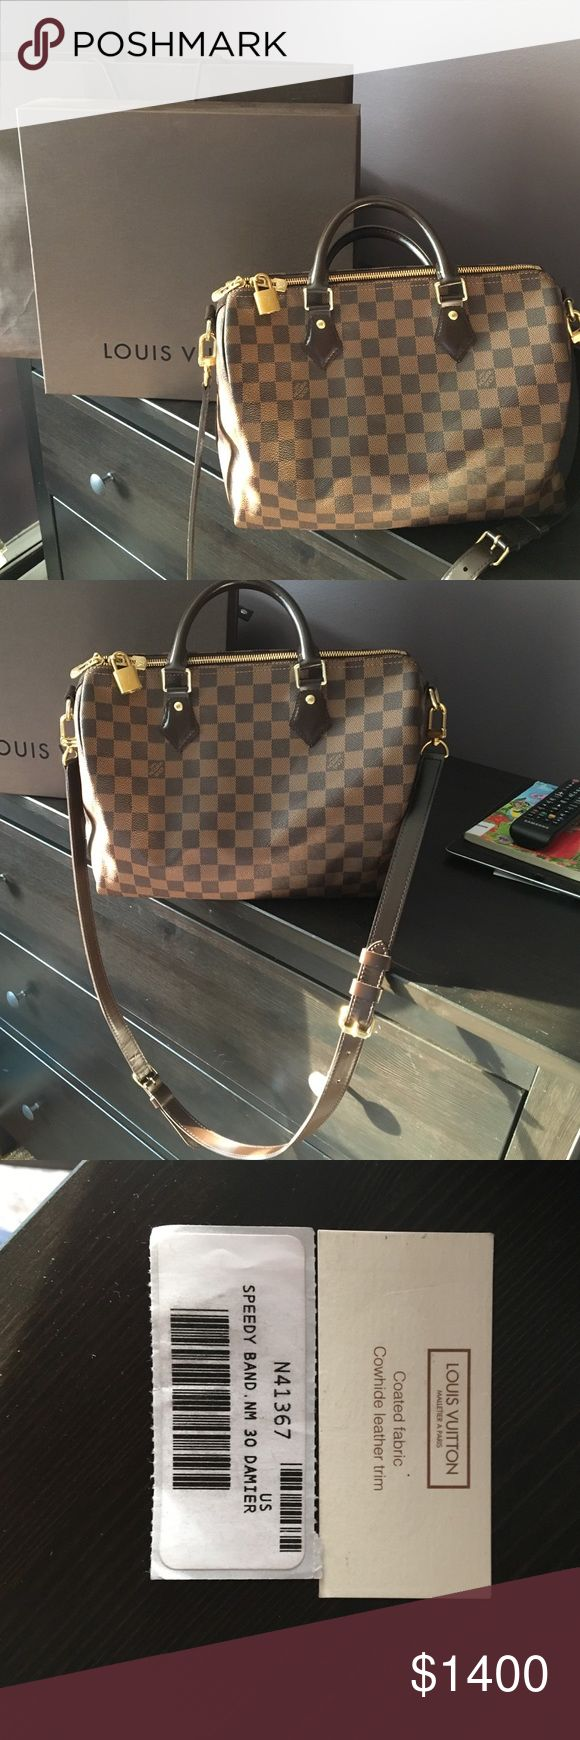 Louis Vuitton Speedy 30 Bandouliere Used Three Times, Box And Bag, No Scratches, No Signs Of Usage Louis Vuitton Bags Satchels